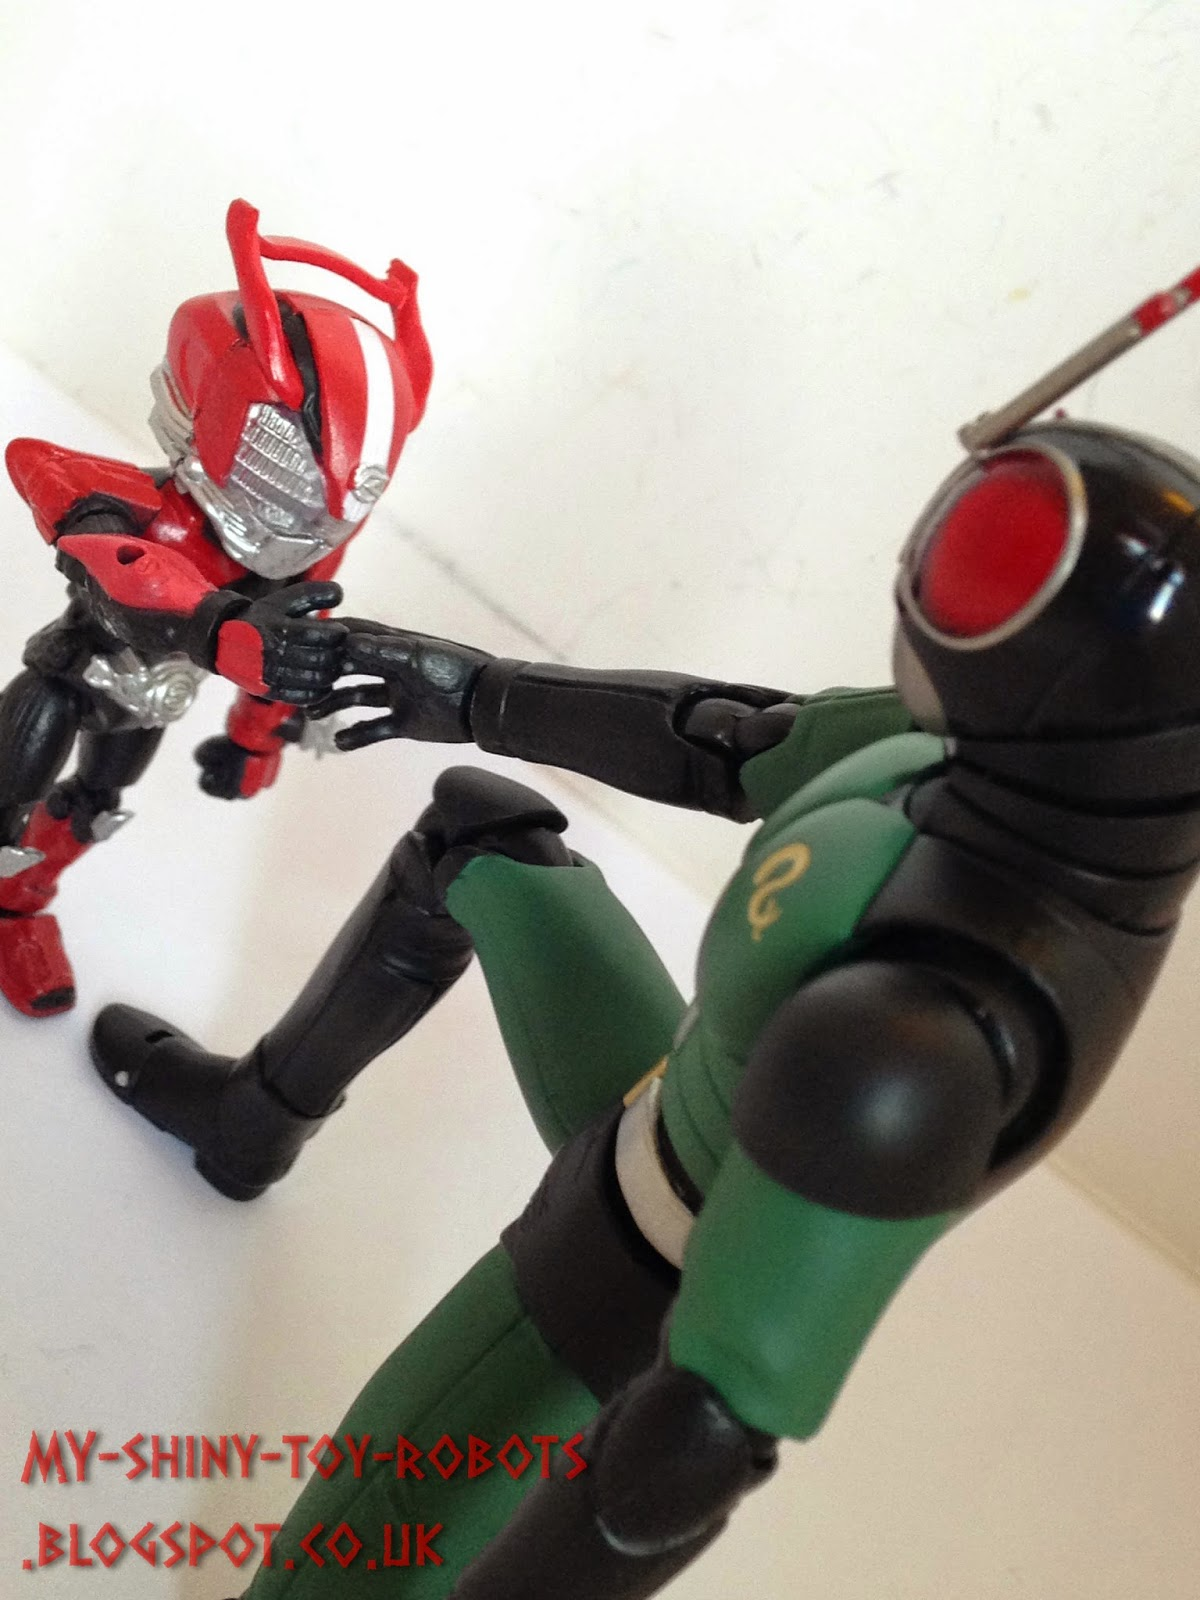 Meeting Black RX